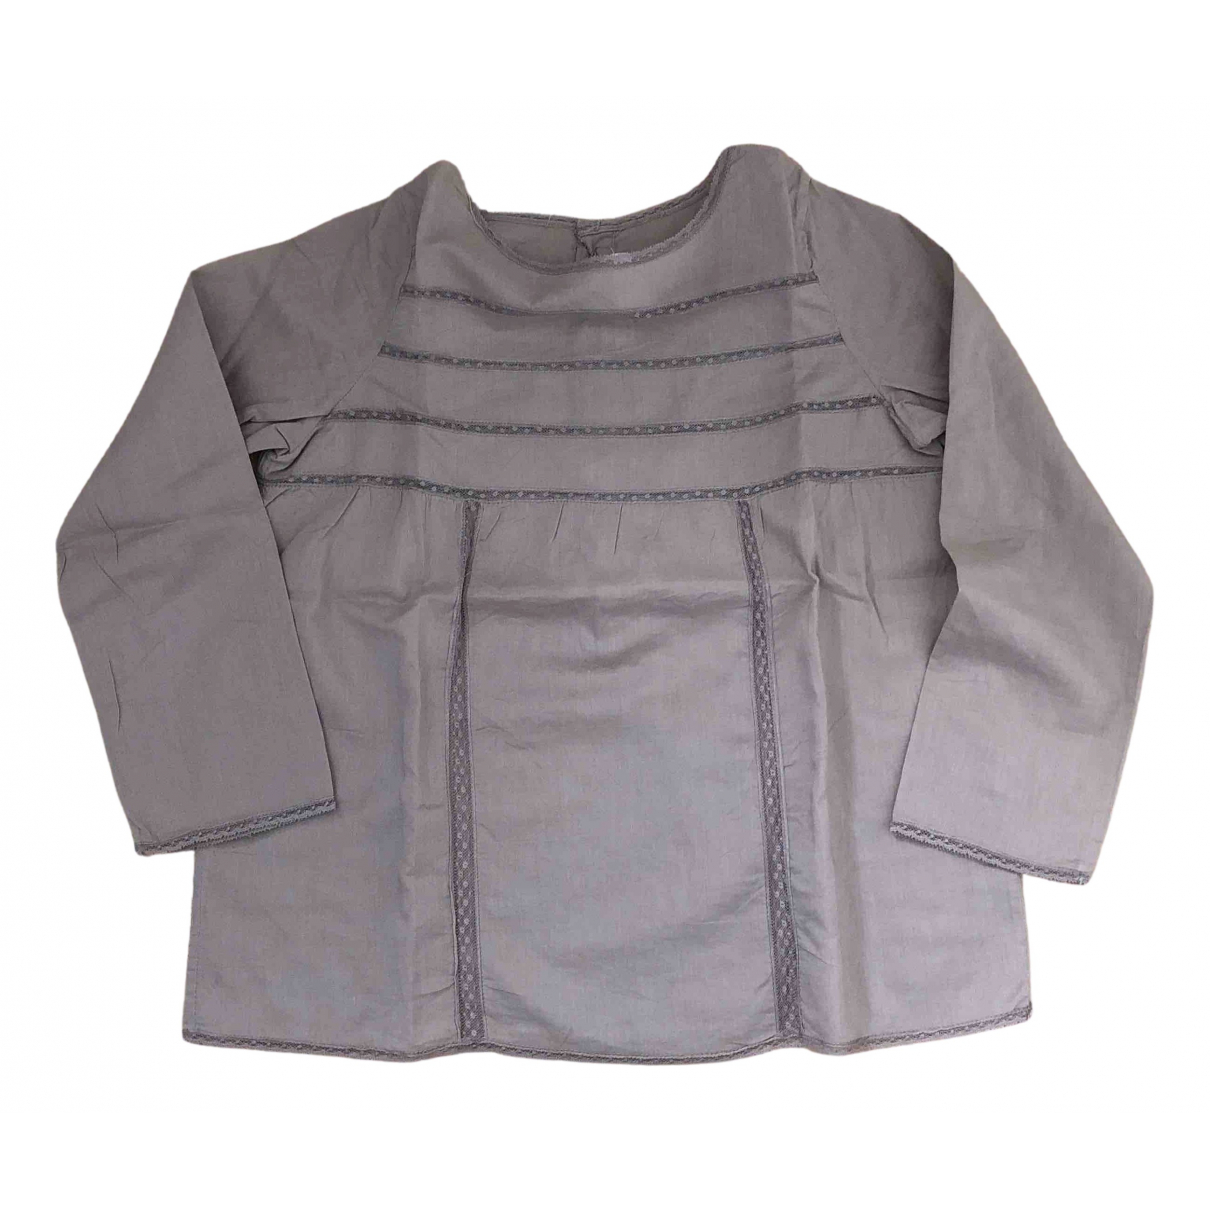 Bonpoint N Ecru Cotton  top for Kids 8 years - up to 128cm FR